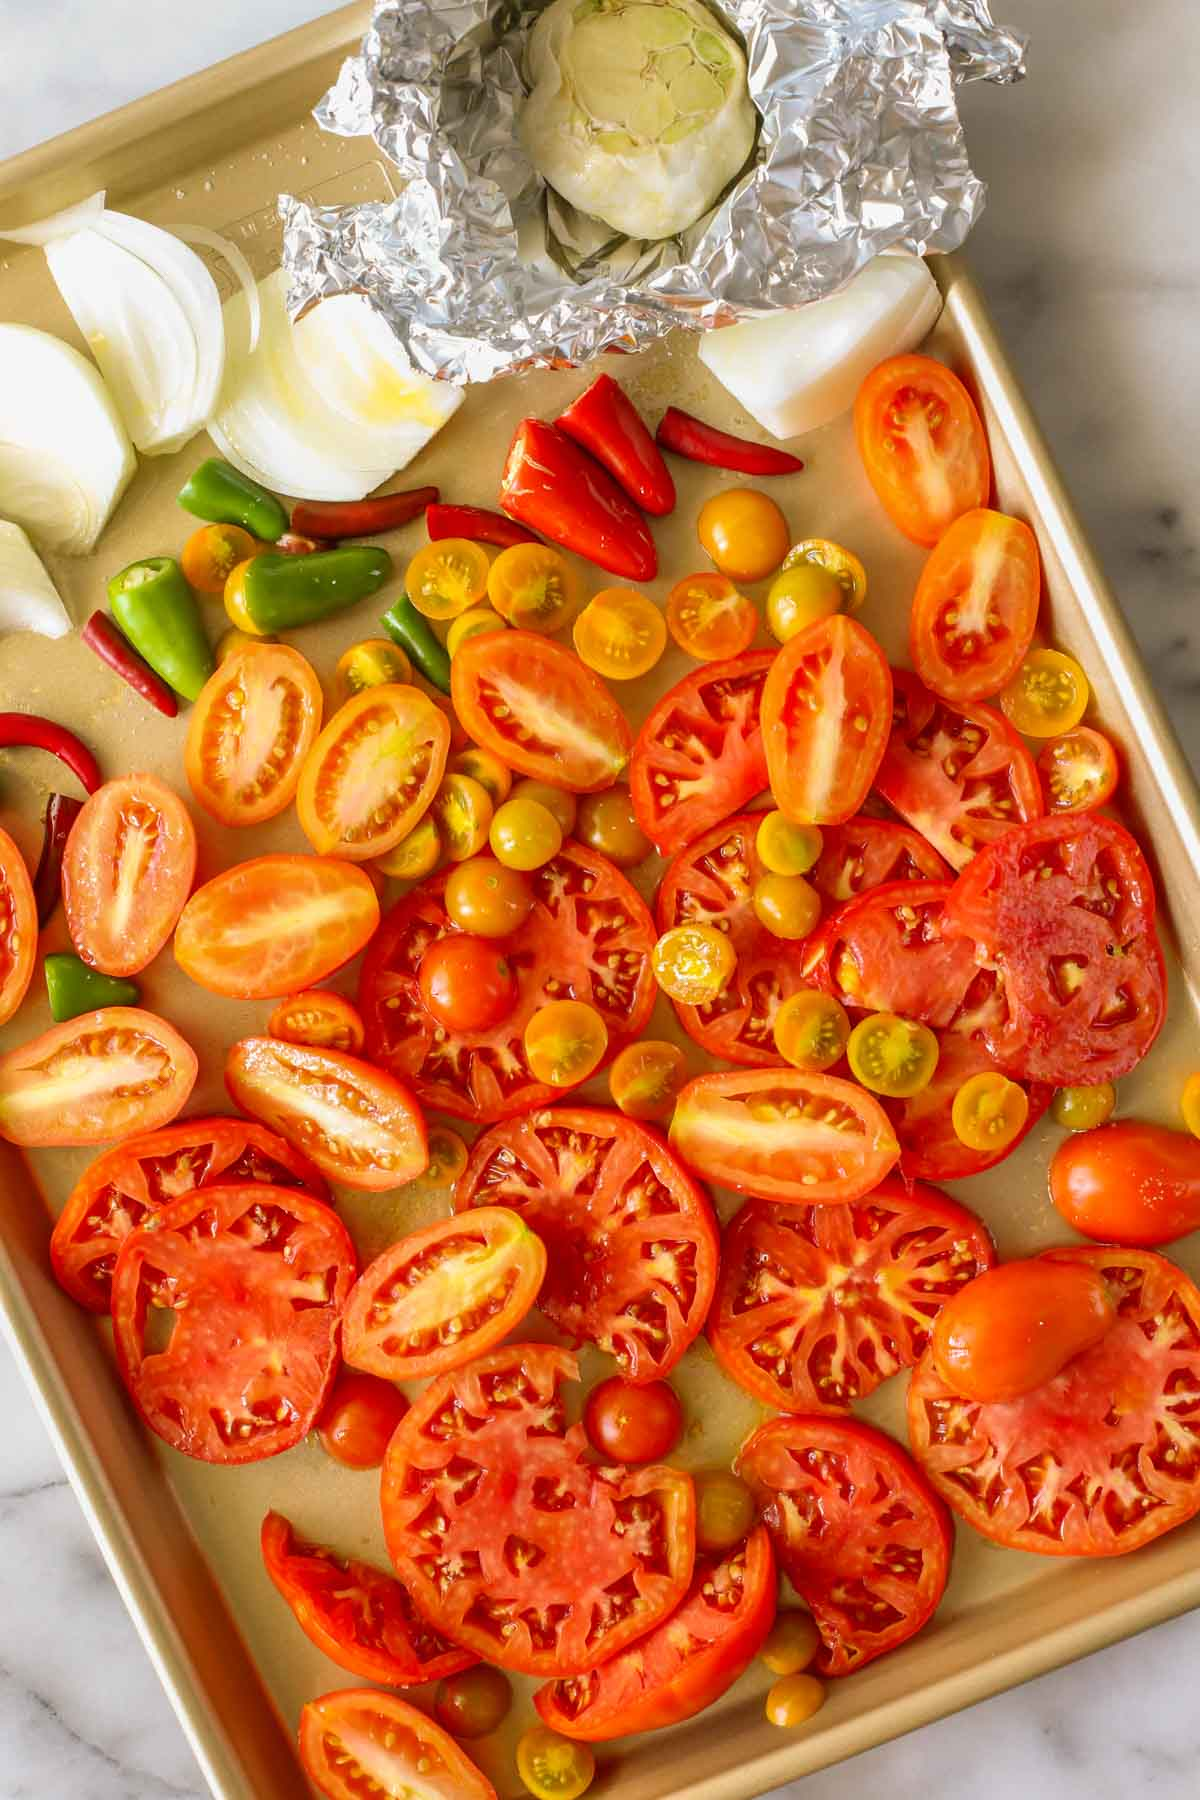 Overhead shot of tomatoes, peppers, onions, and garlic on a sheet pan, all ingredients for Roasted Tomato Salsa.